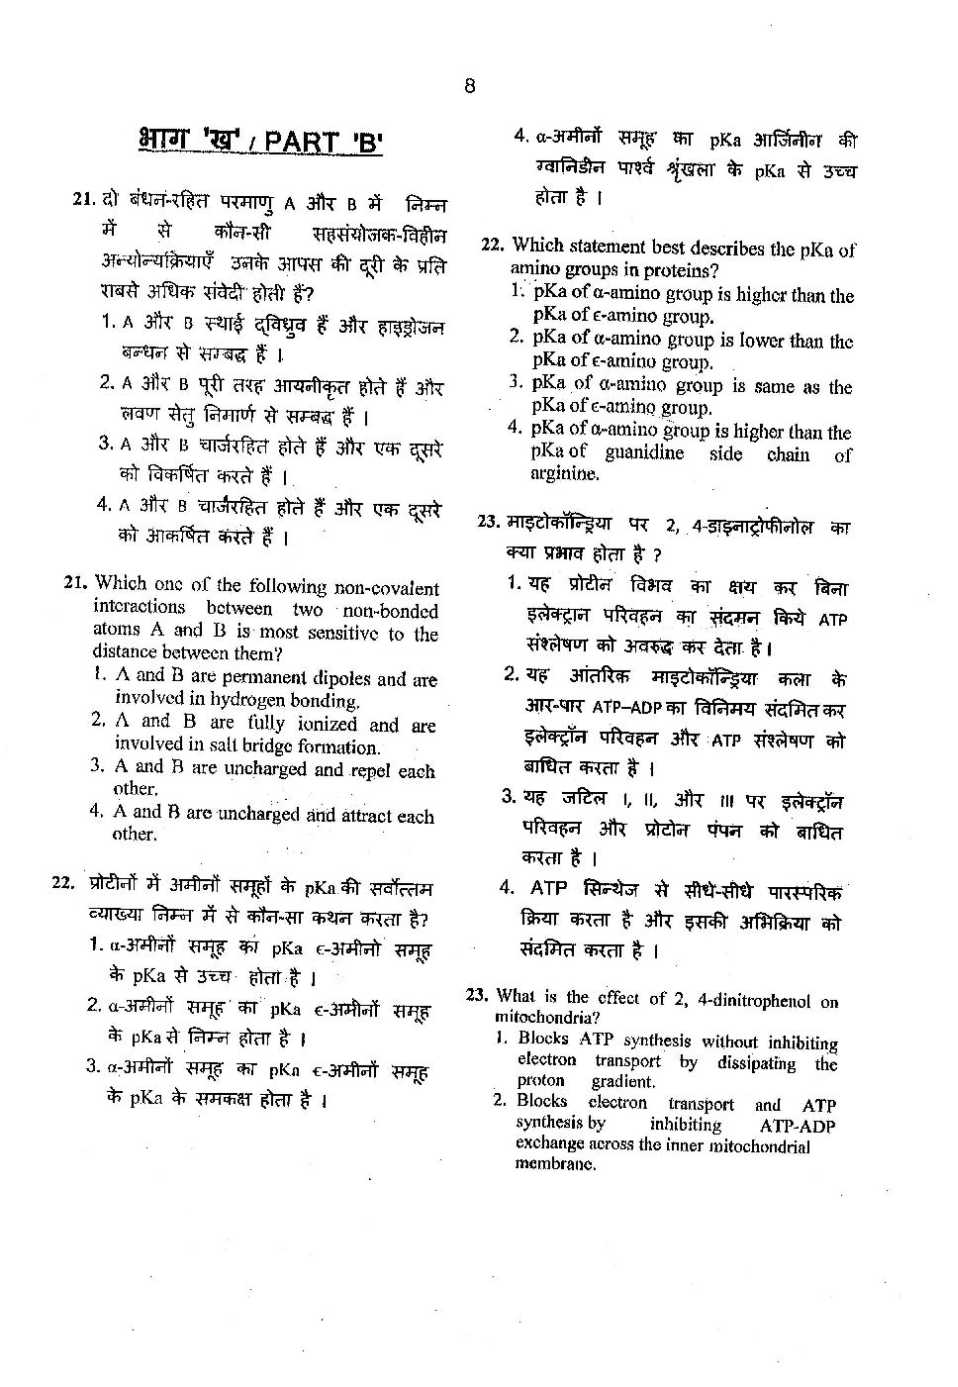 After Life 2019 Question Paper 2017 pdf Download html With Css